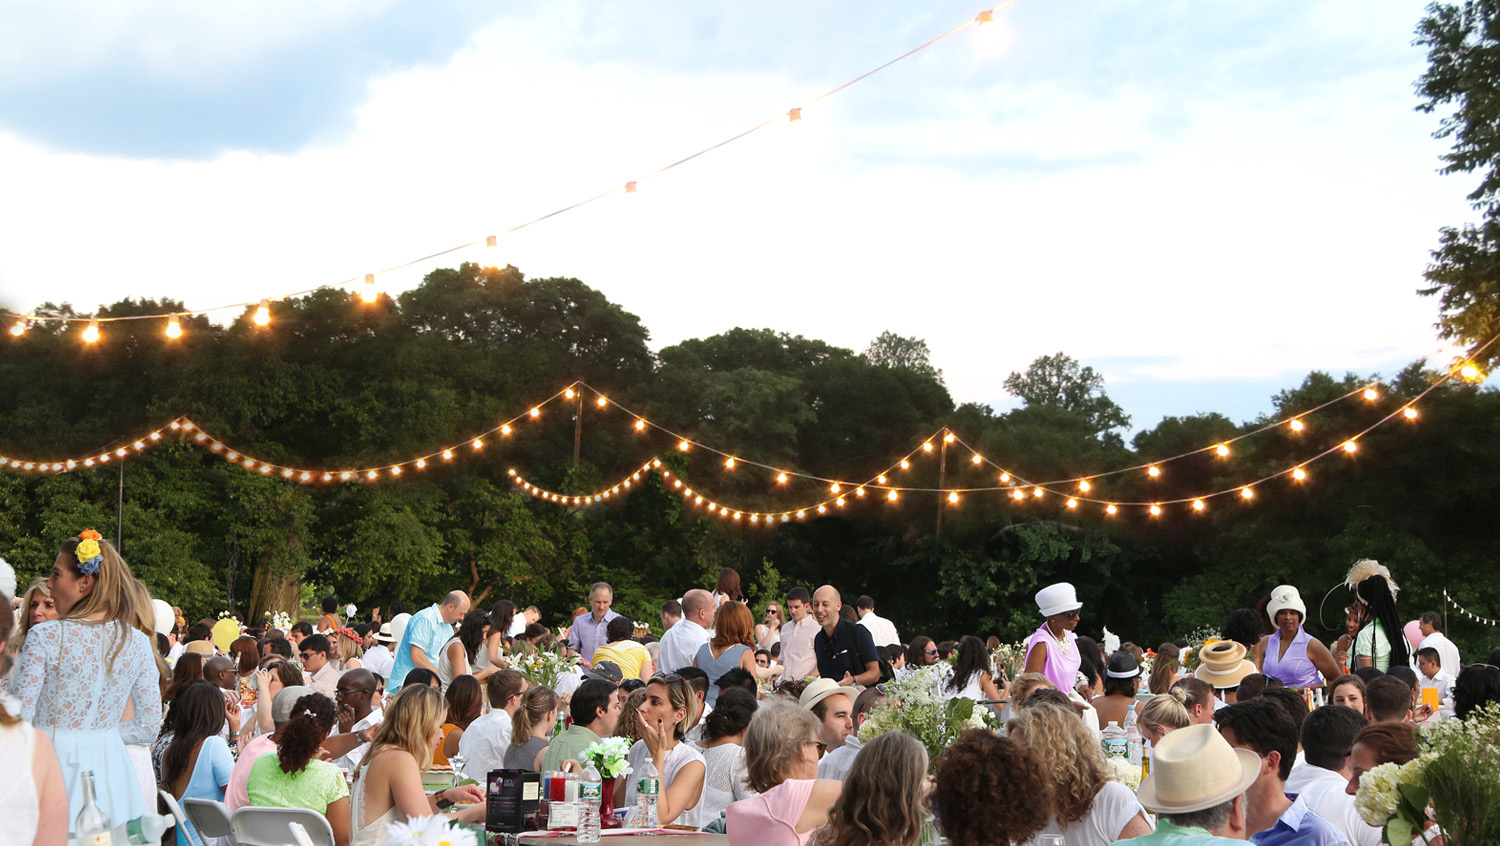 Exclusive: Prospect Park is hosting a magical pop-up dinner under the stars